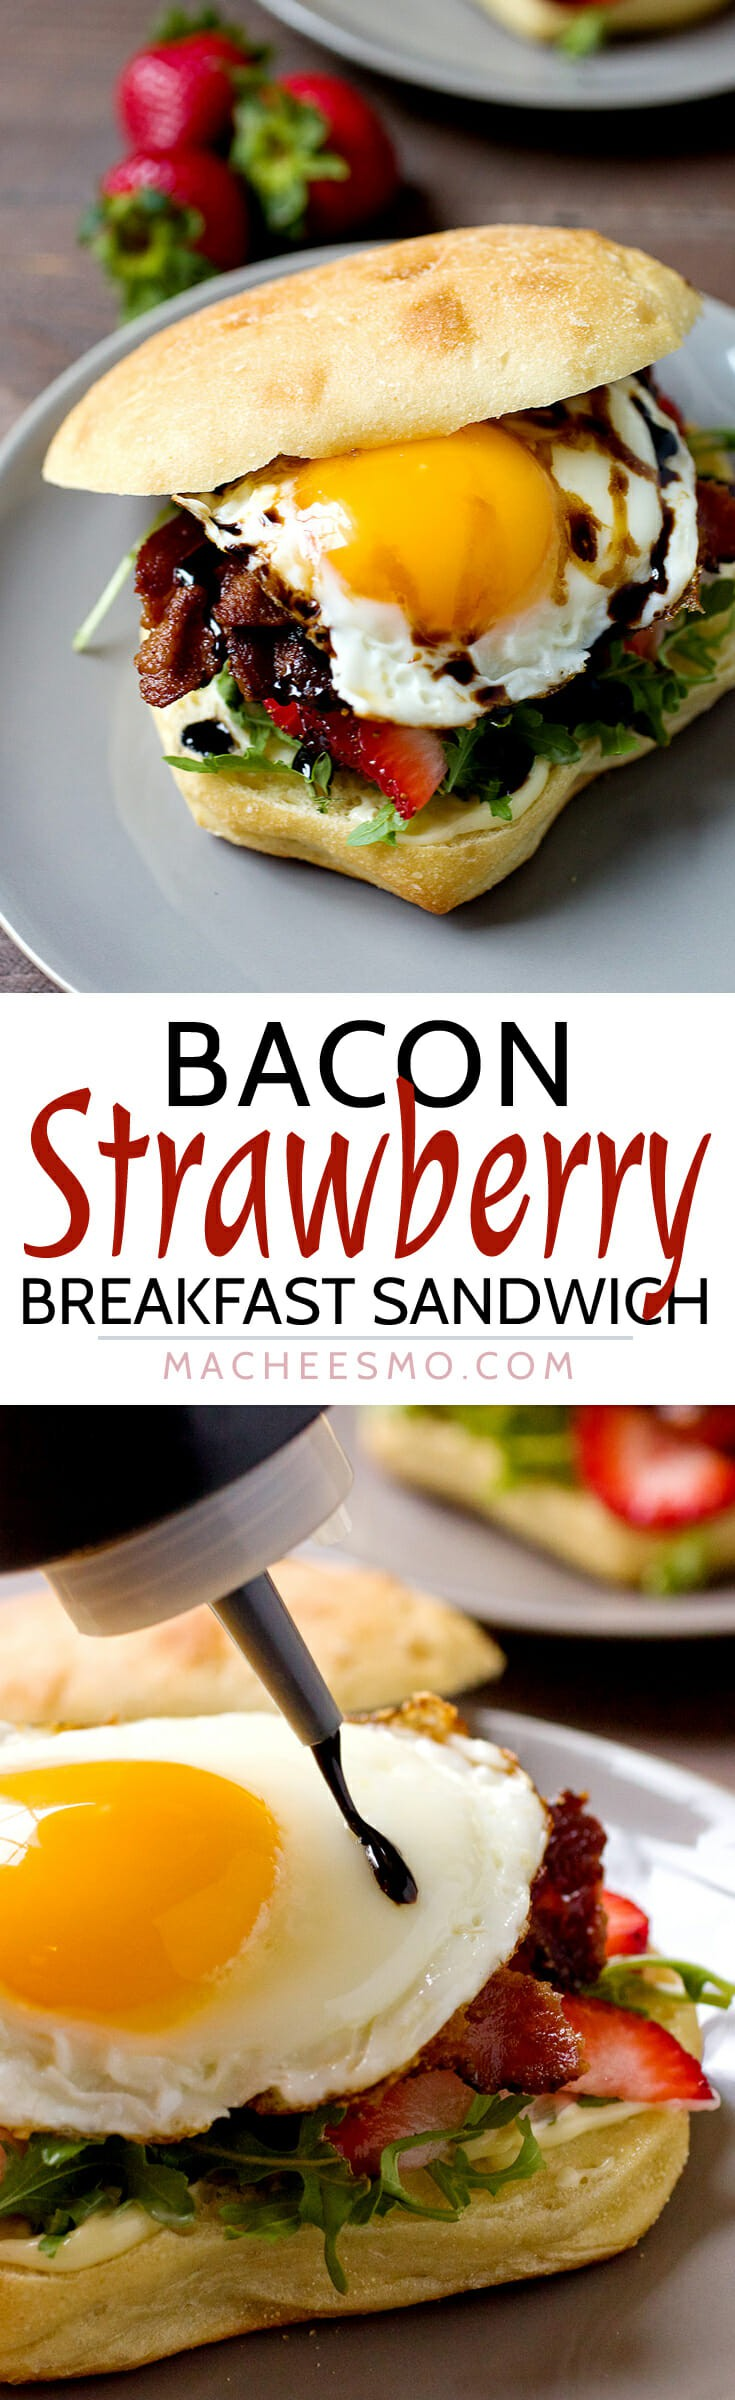 Bacon Strawberry Breakfast Sandwich: This simple breakfast sandwich is packed with sweet and savory flavors. Don't forget the quick balsamic sauce! Perfect for strawberry season! | macheesmo.com